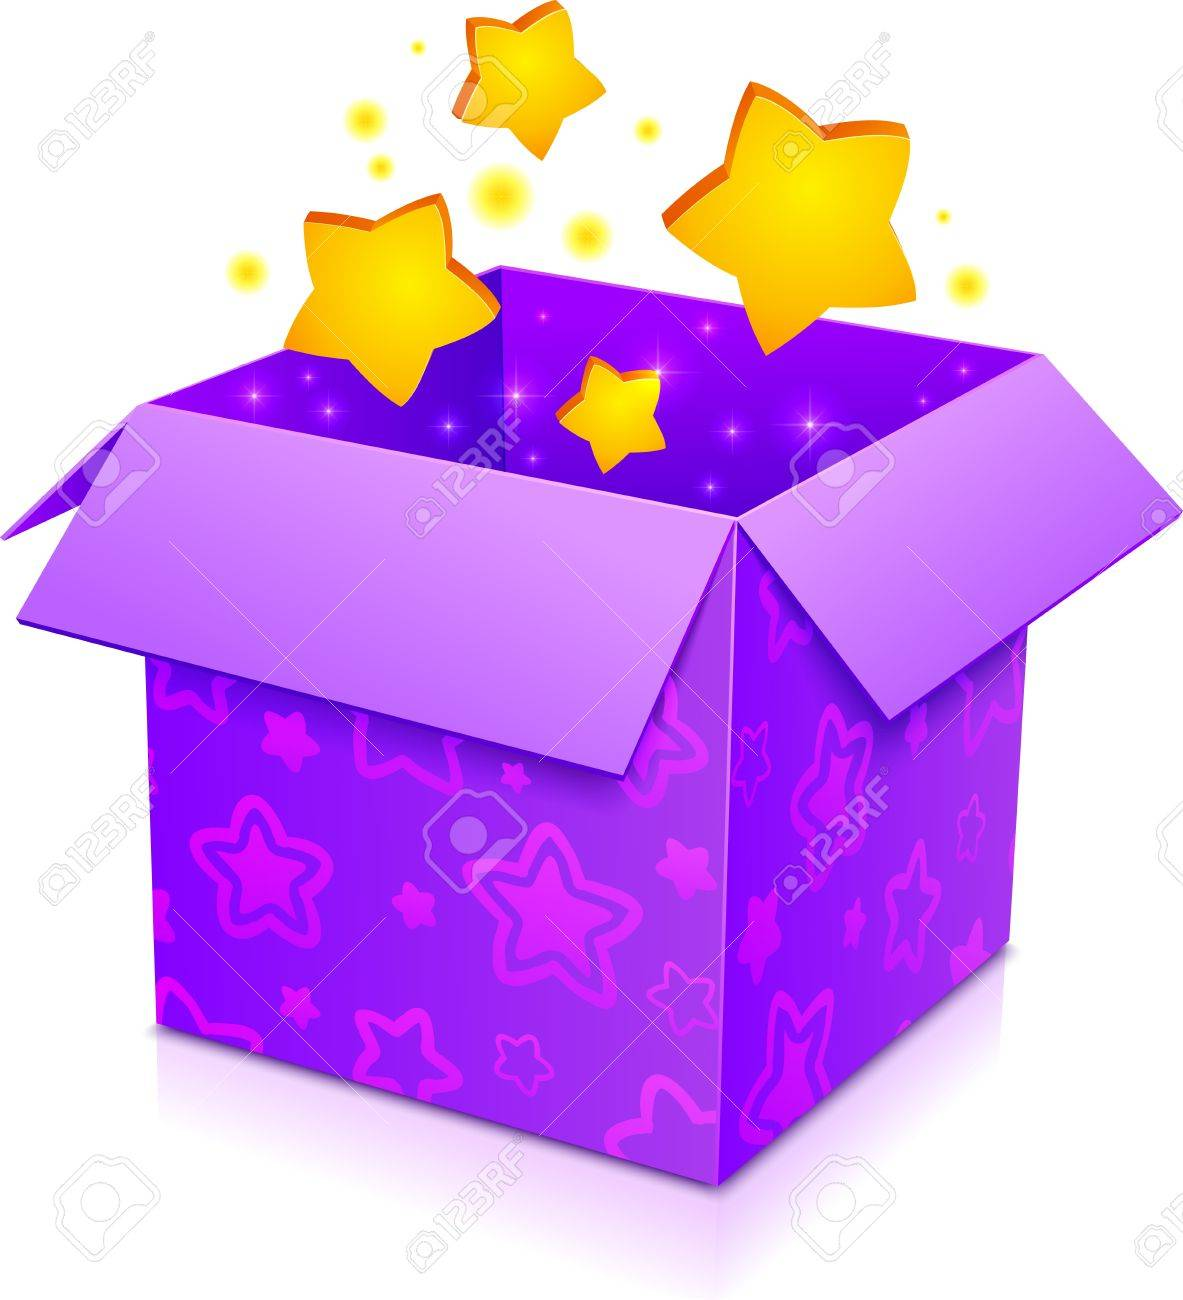 Violet magic box with yellow stars and magenta pattern.